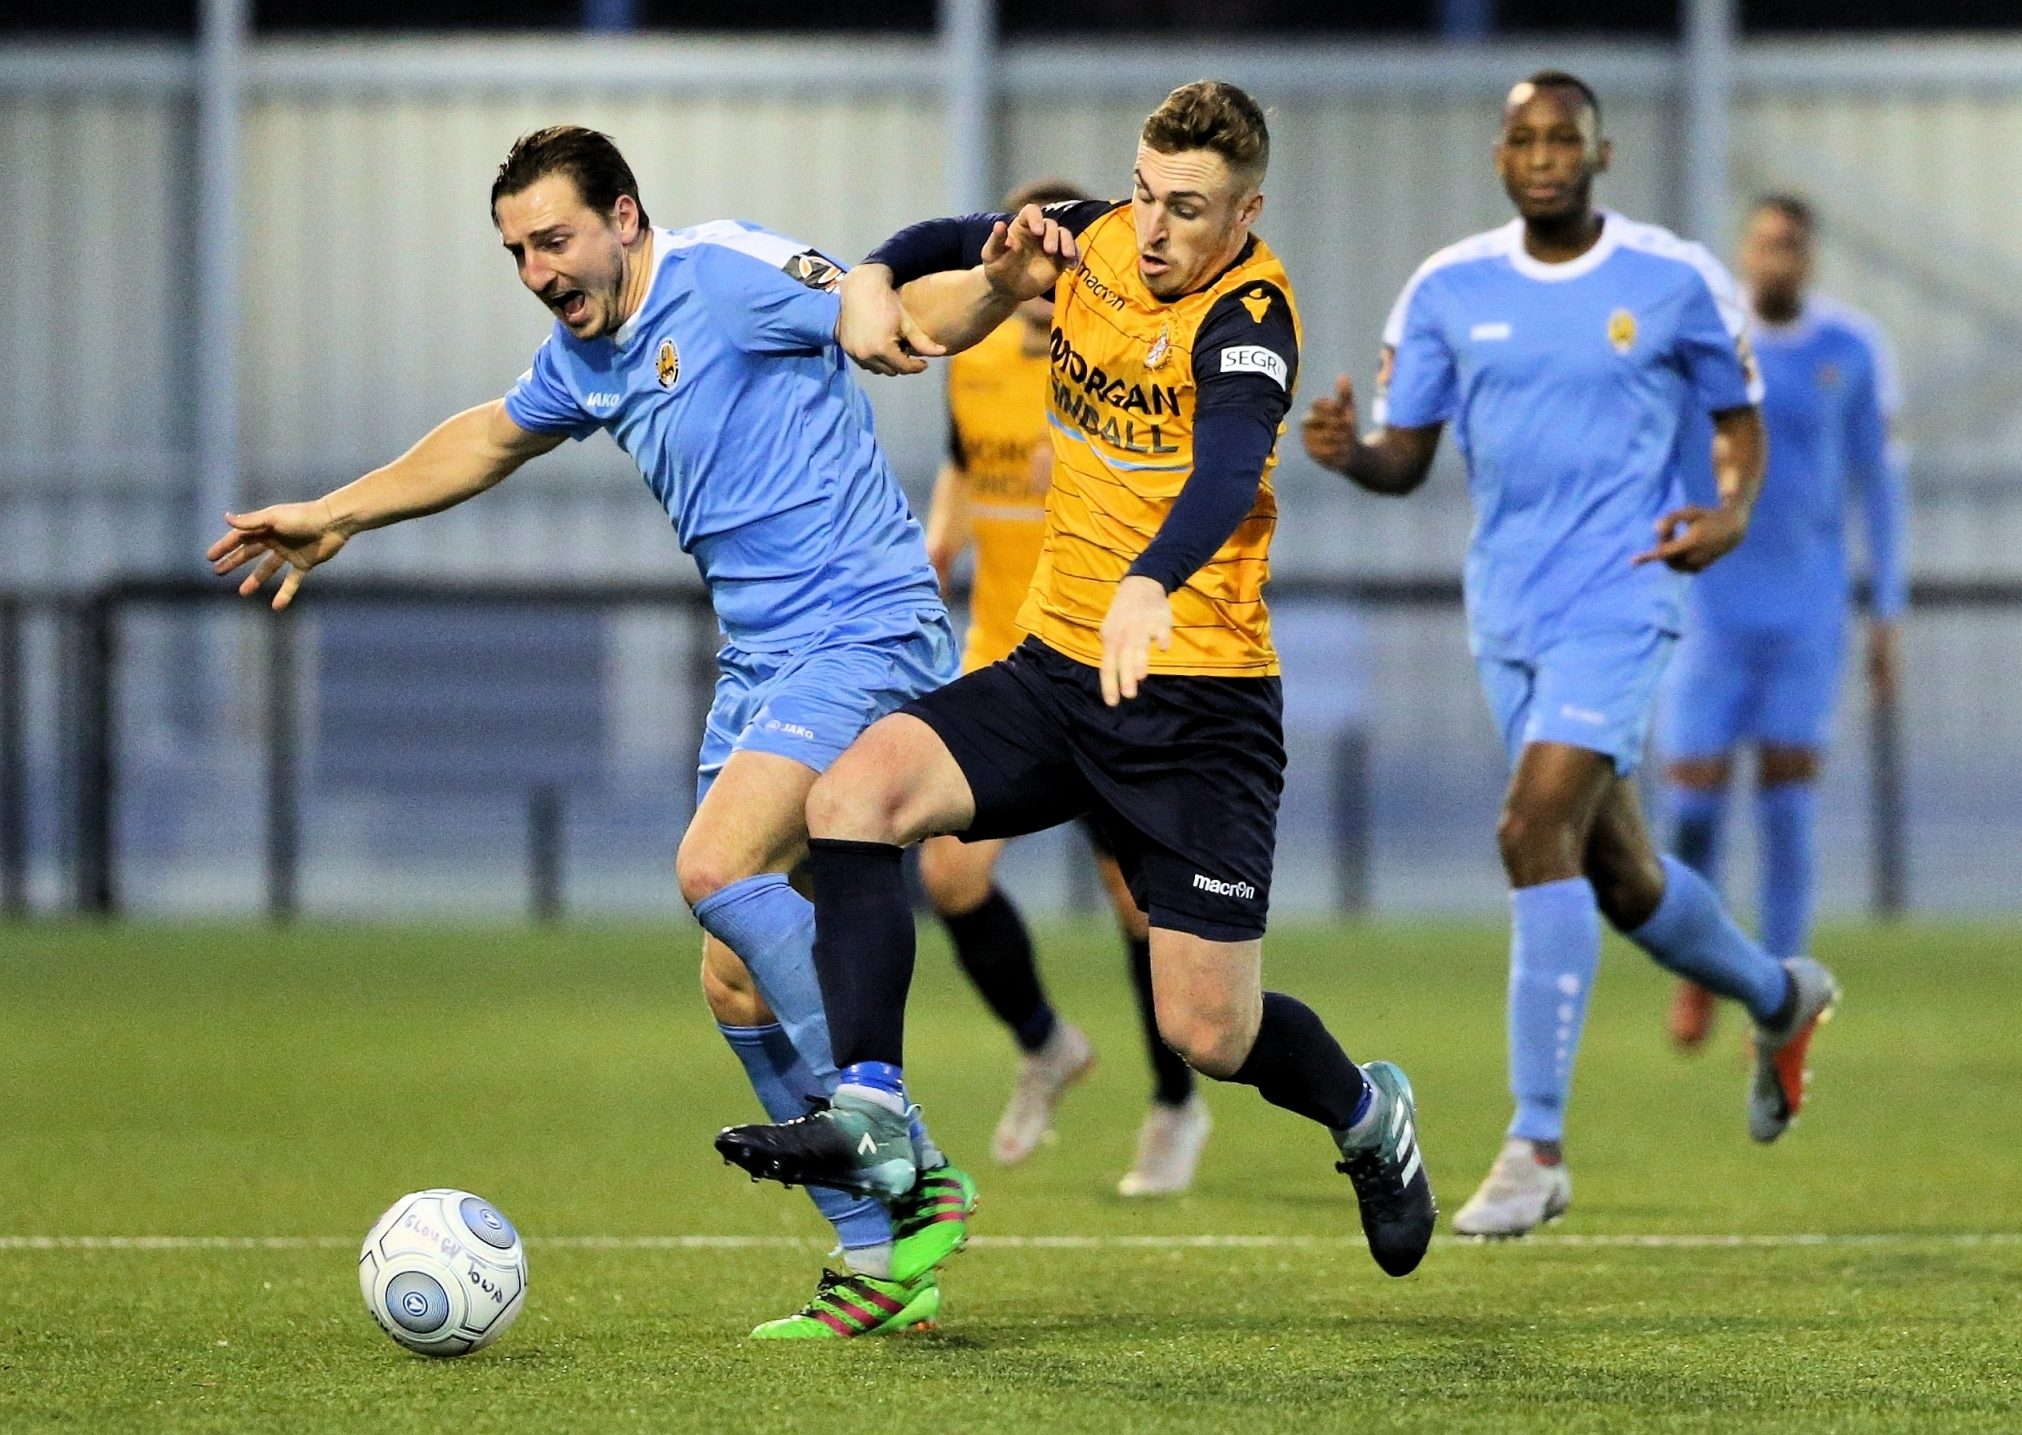 Ben Harris, right, was among the Slough goalscorers at Wealdstone. Picture: Gary House.